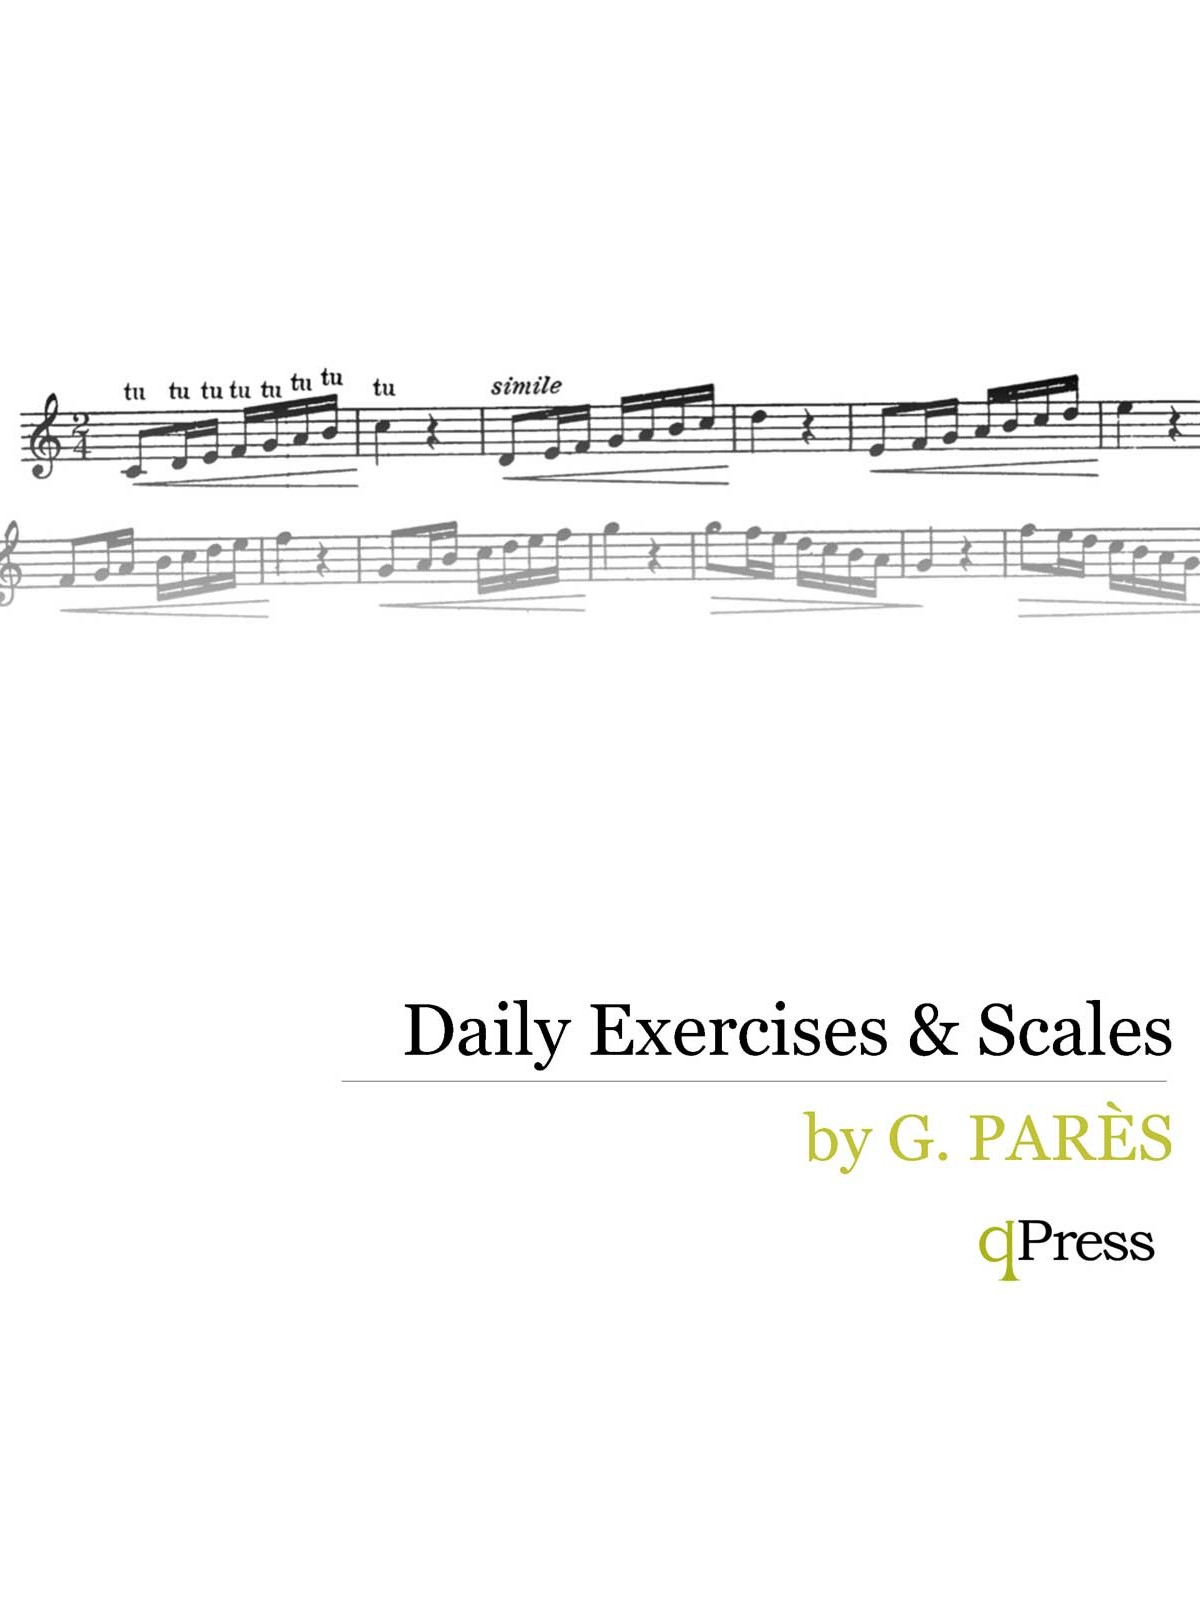 Pares, Daily Exercises and Scales PDF